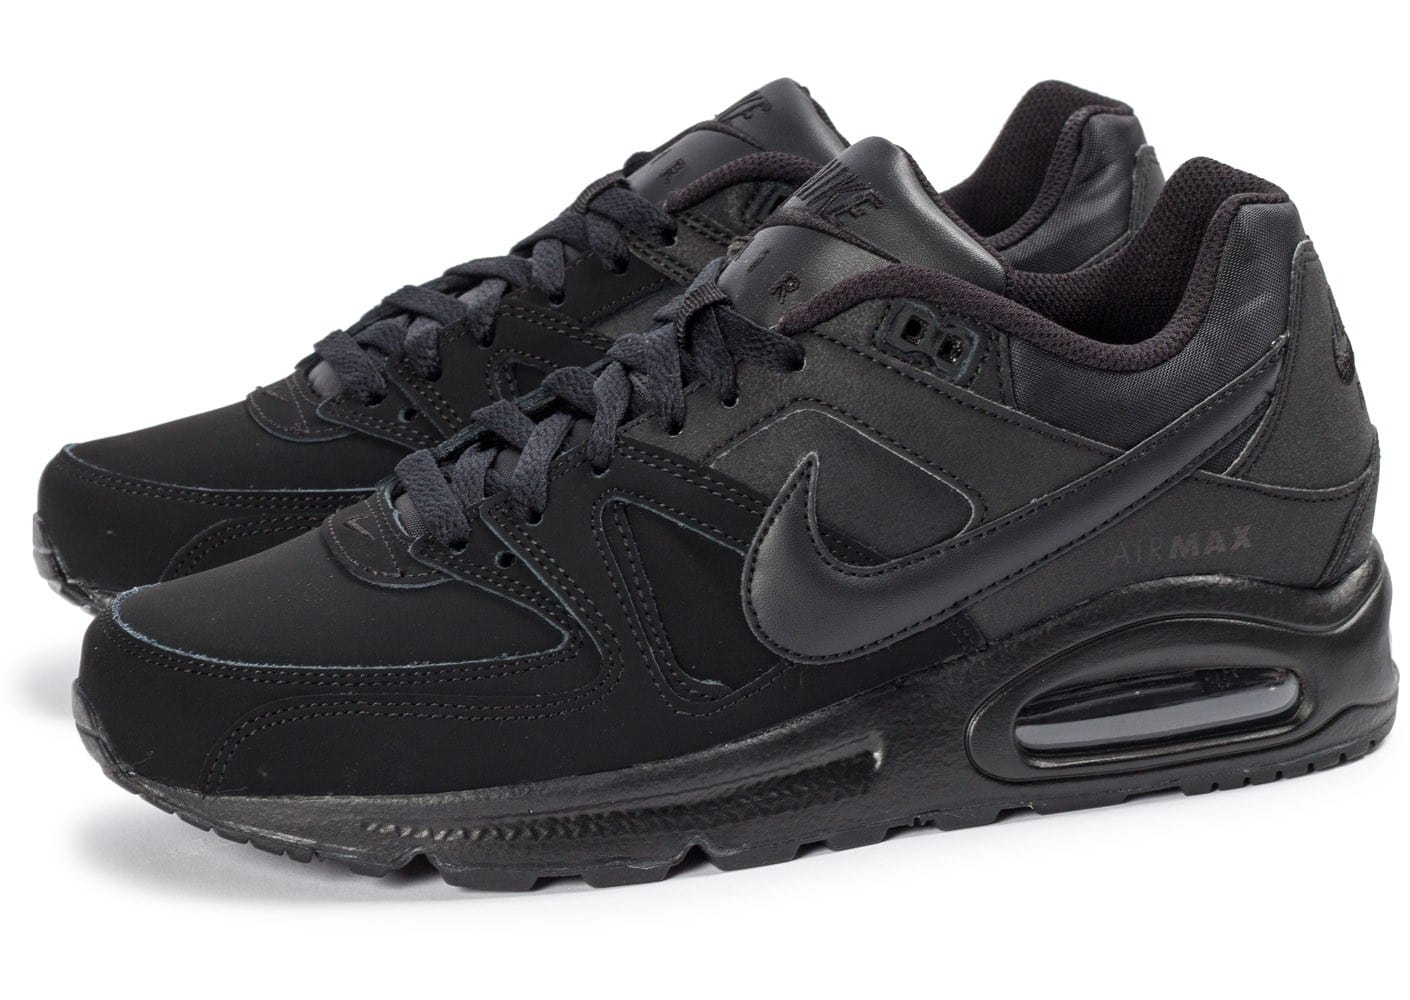 Nike Air Max Command Leather noir - Chaussures Baskets homme ...